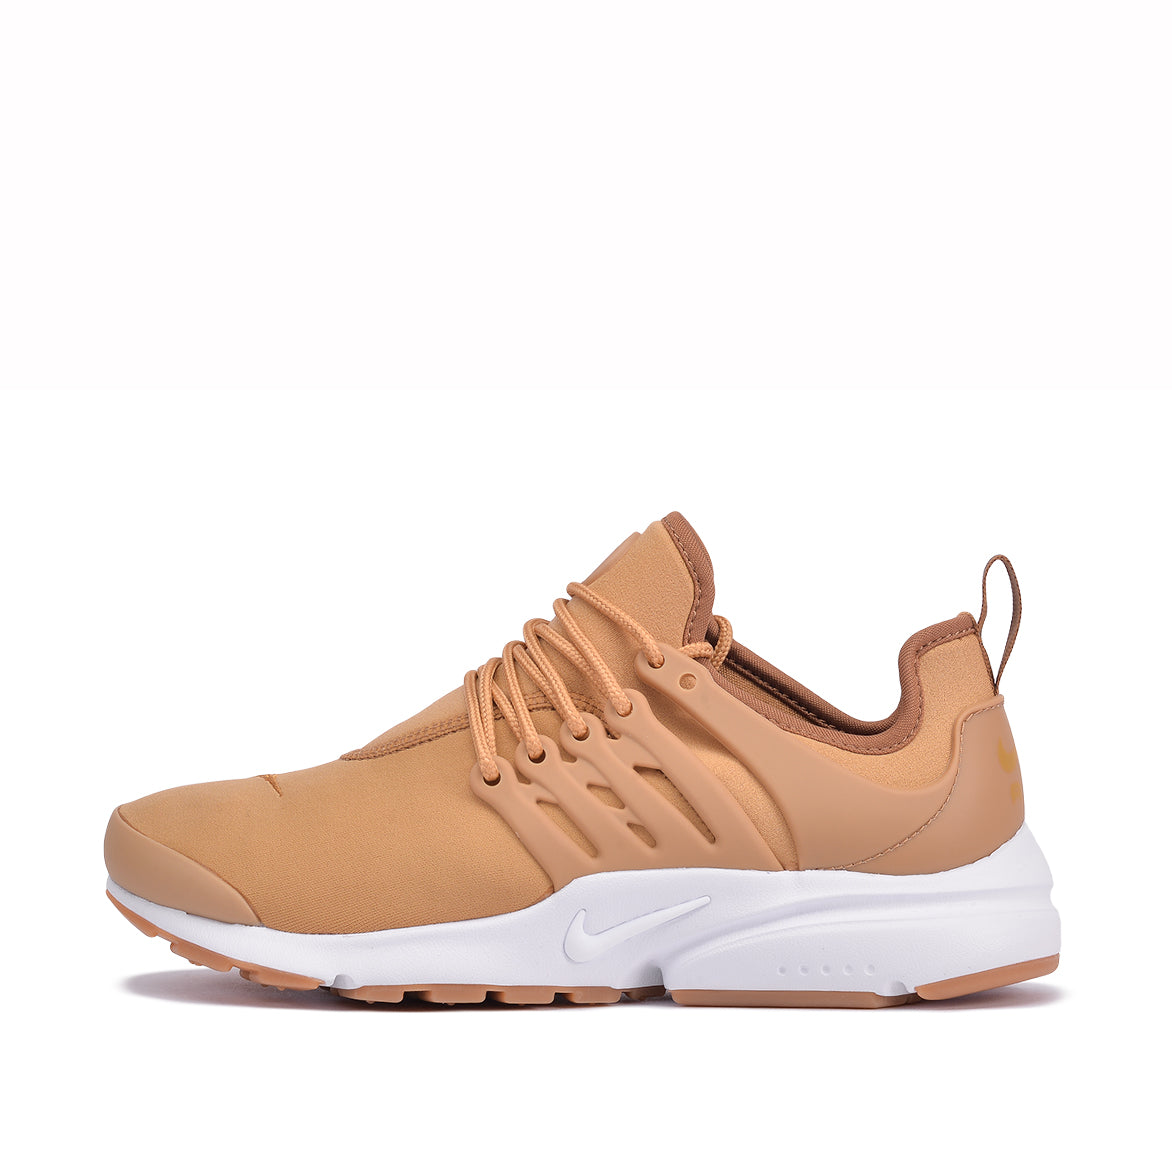 new specials best quality official supplier WMNS AIR PRESTO - ELEMENTAL GOLD